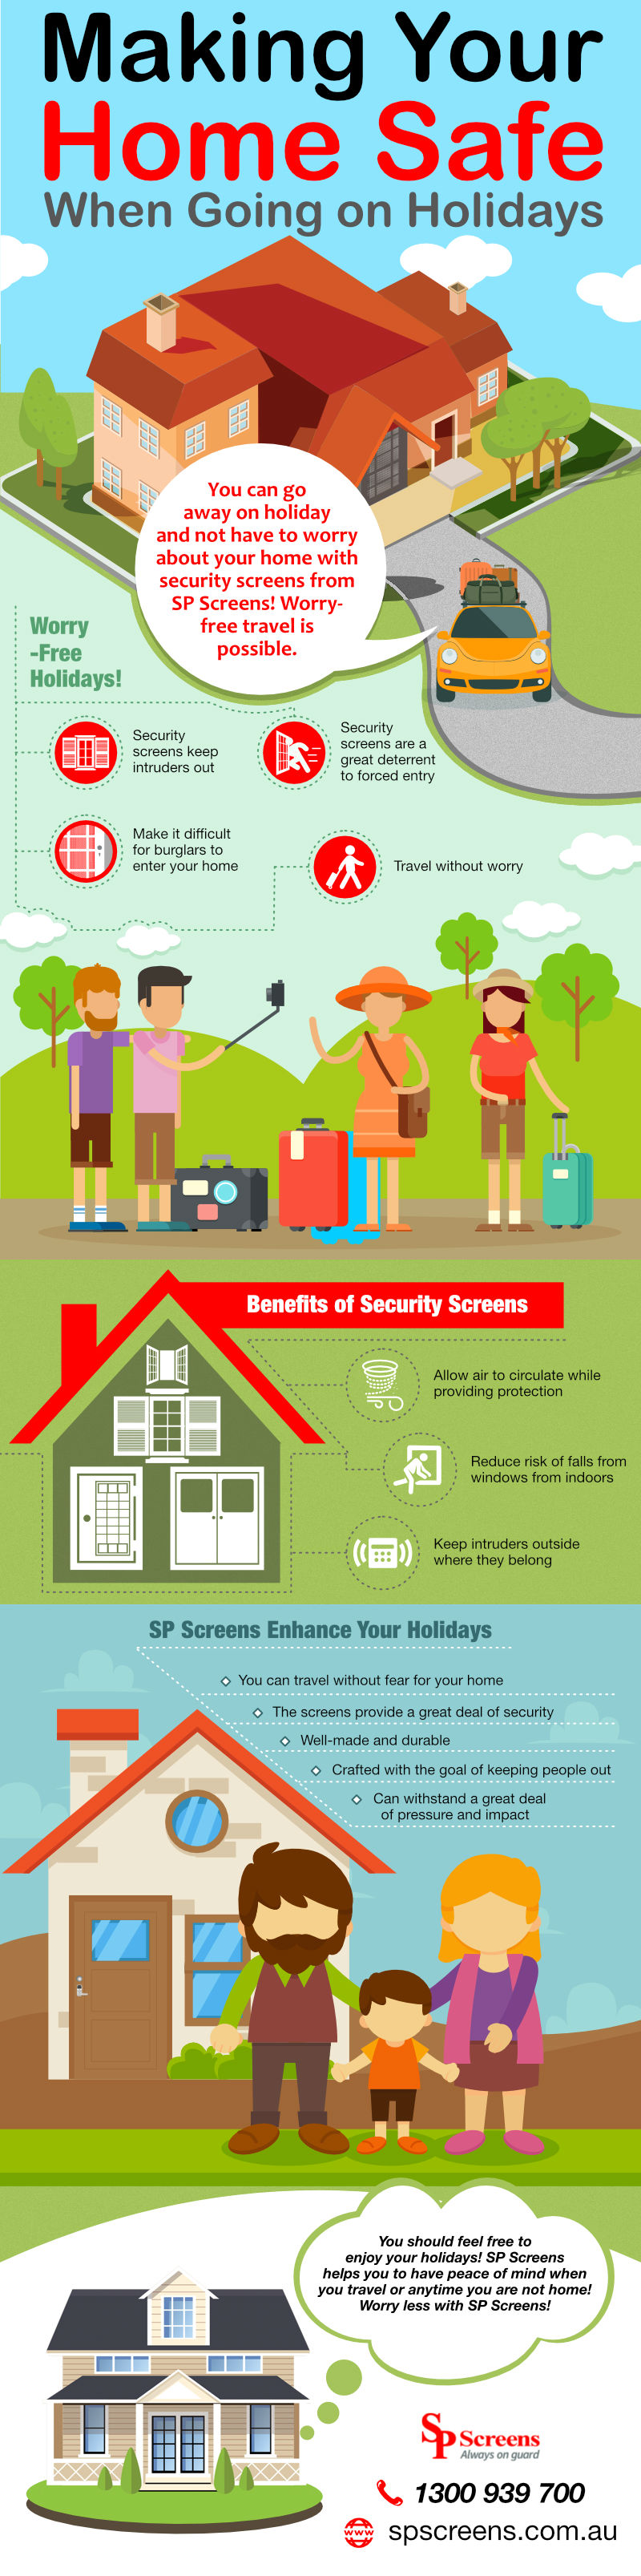 Making Your Home Safe When Going on Holidays